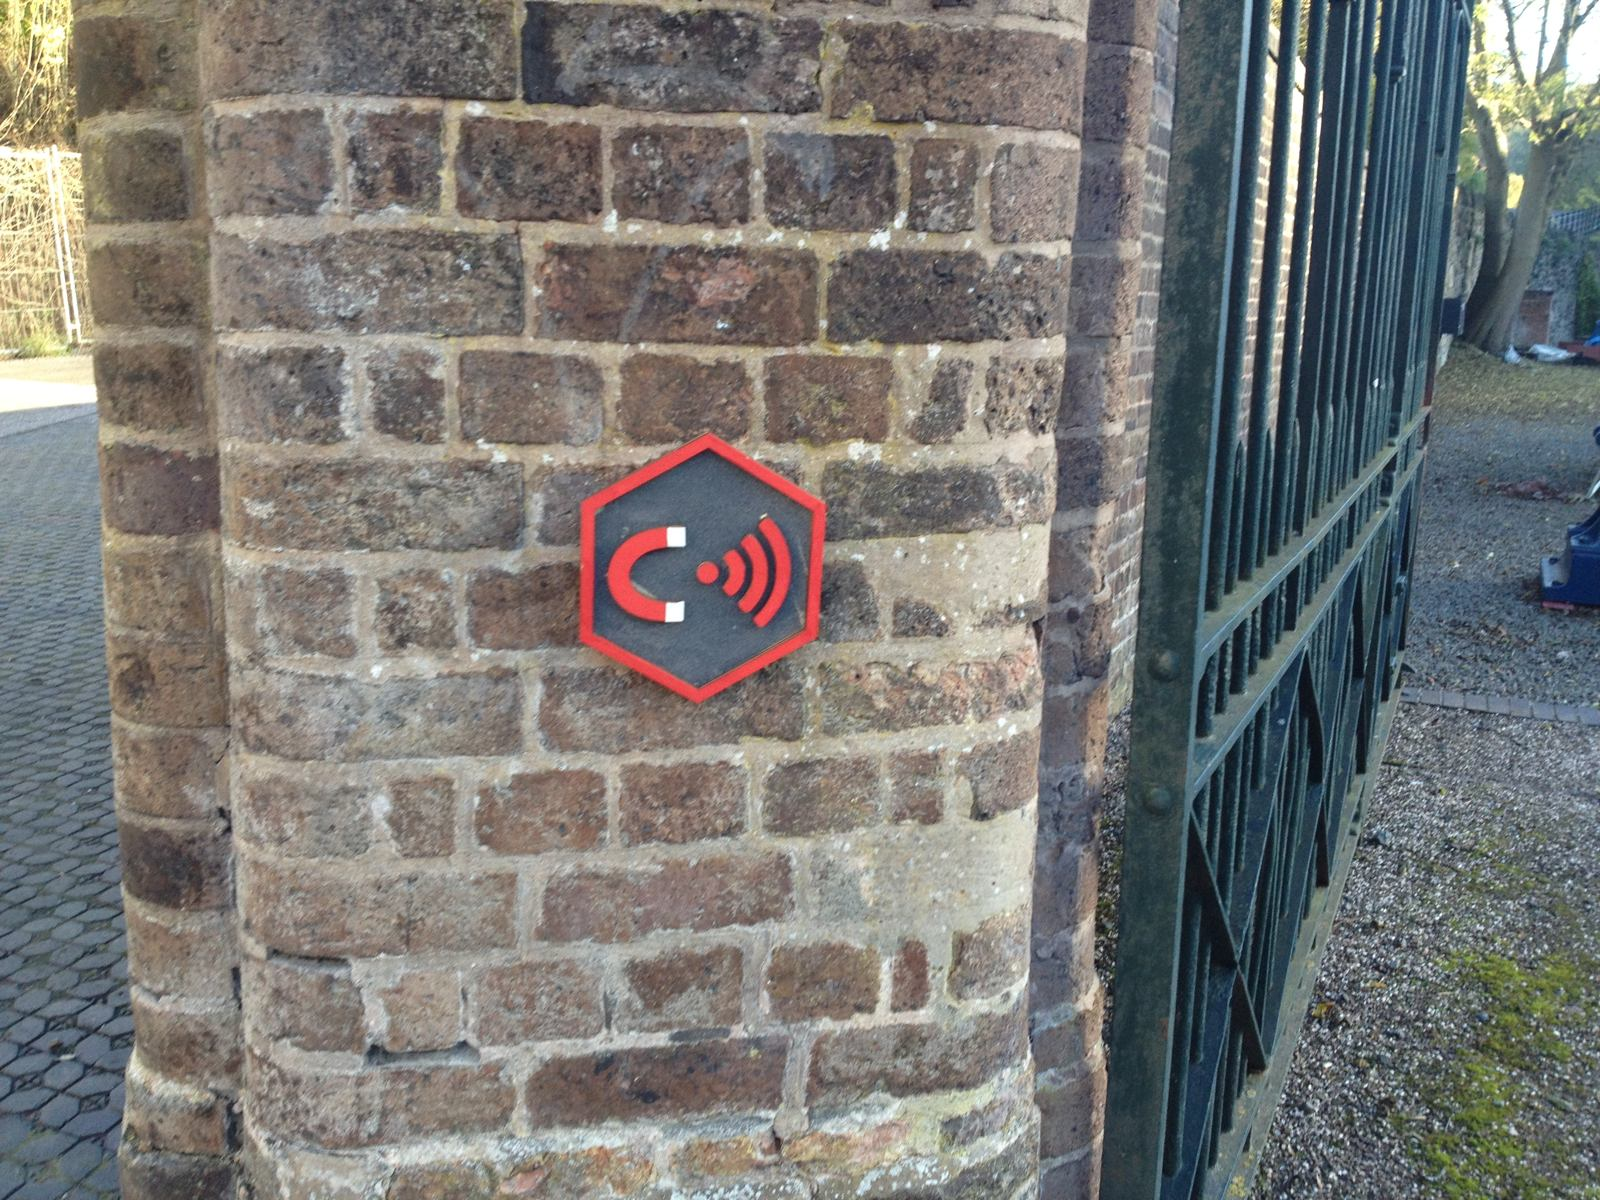 A hexagonal painted marker on a wall by some historic gates